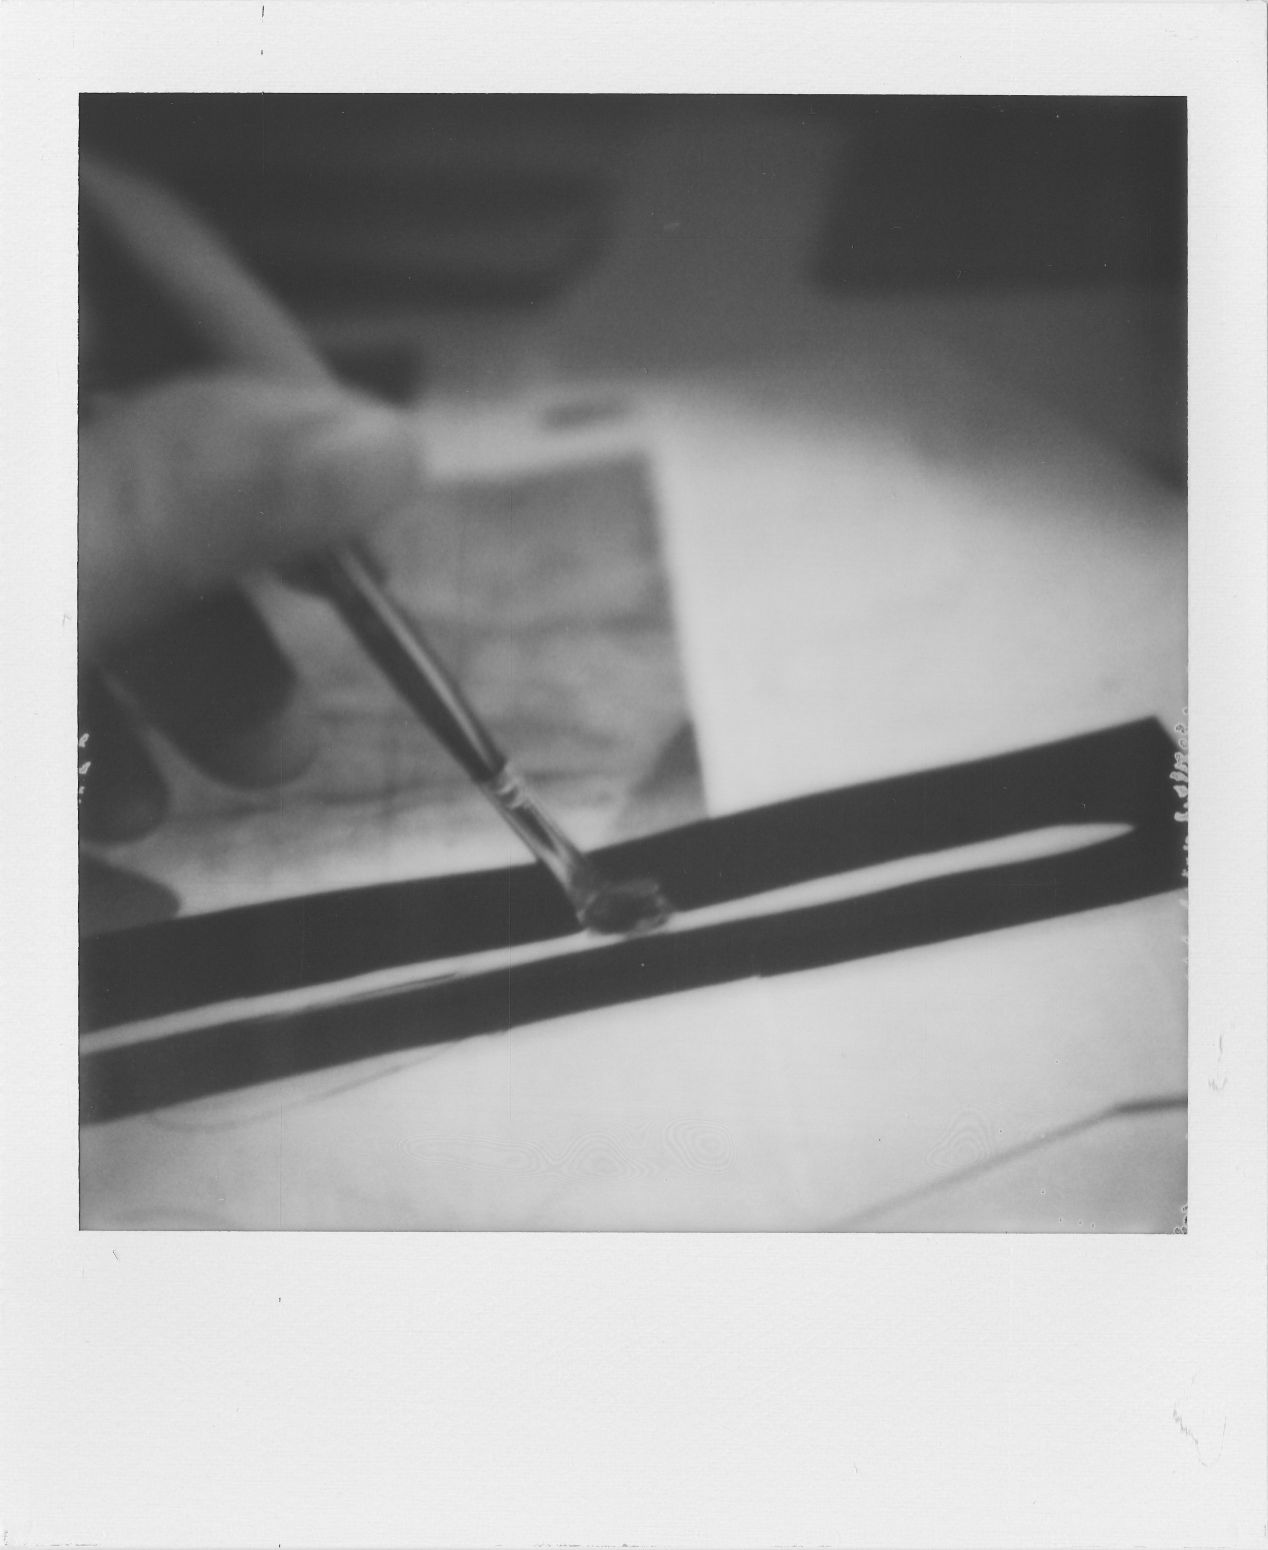 Figure 6. Applying the glue onto the inner side of the cardstock book spine.